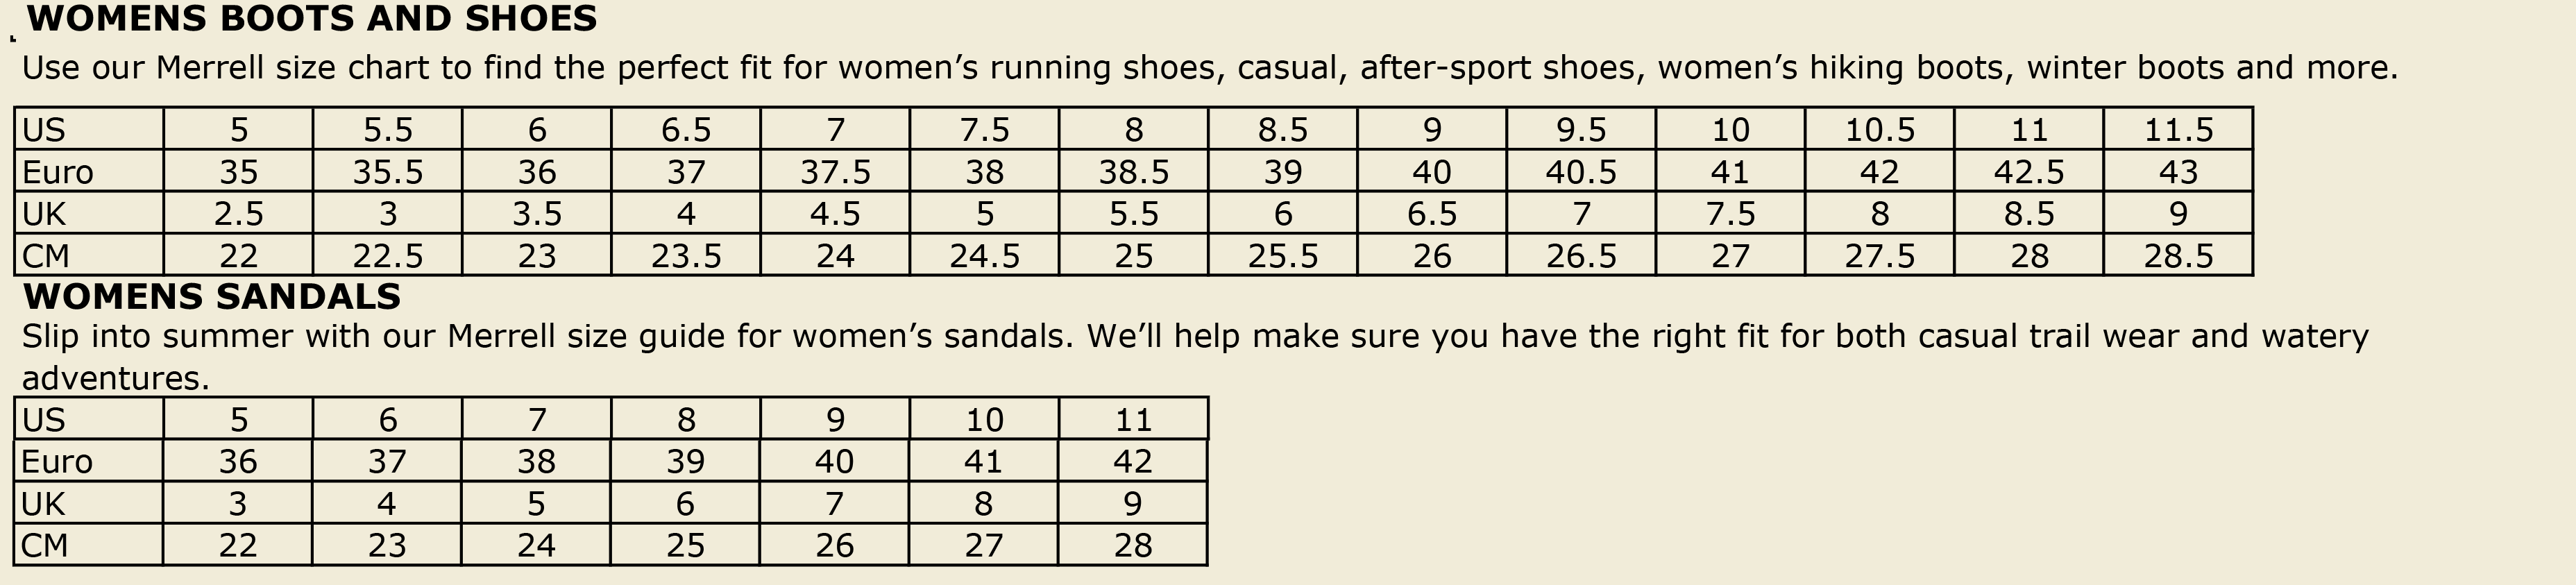 Merrell Womens Footwear Sizing